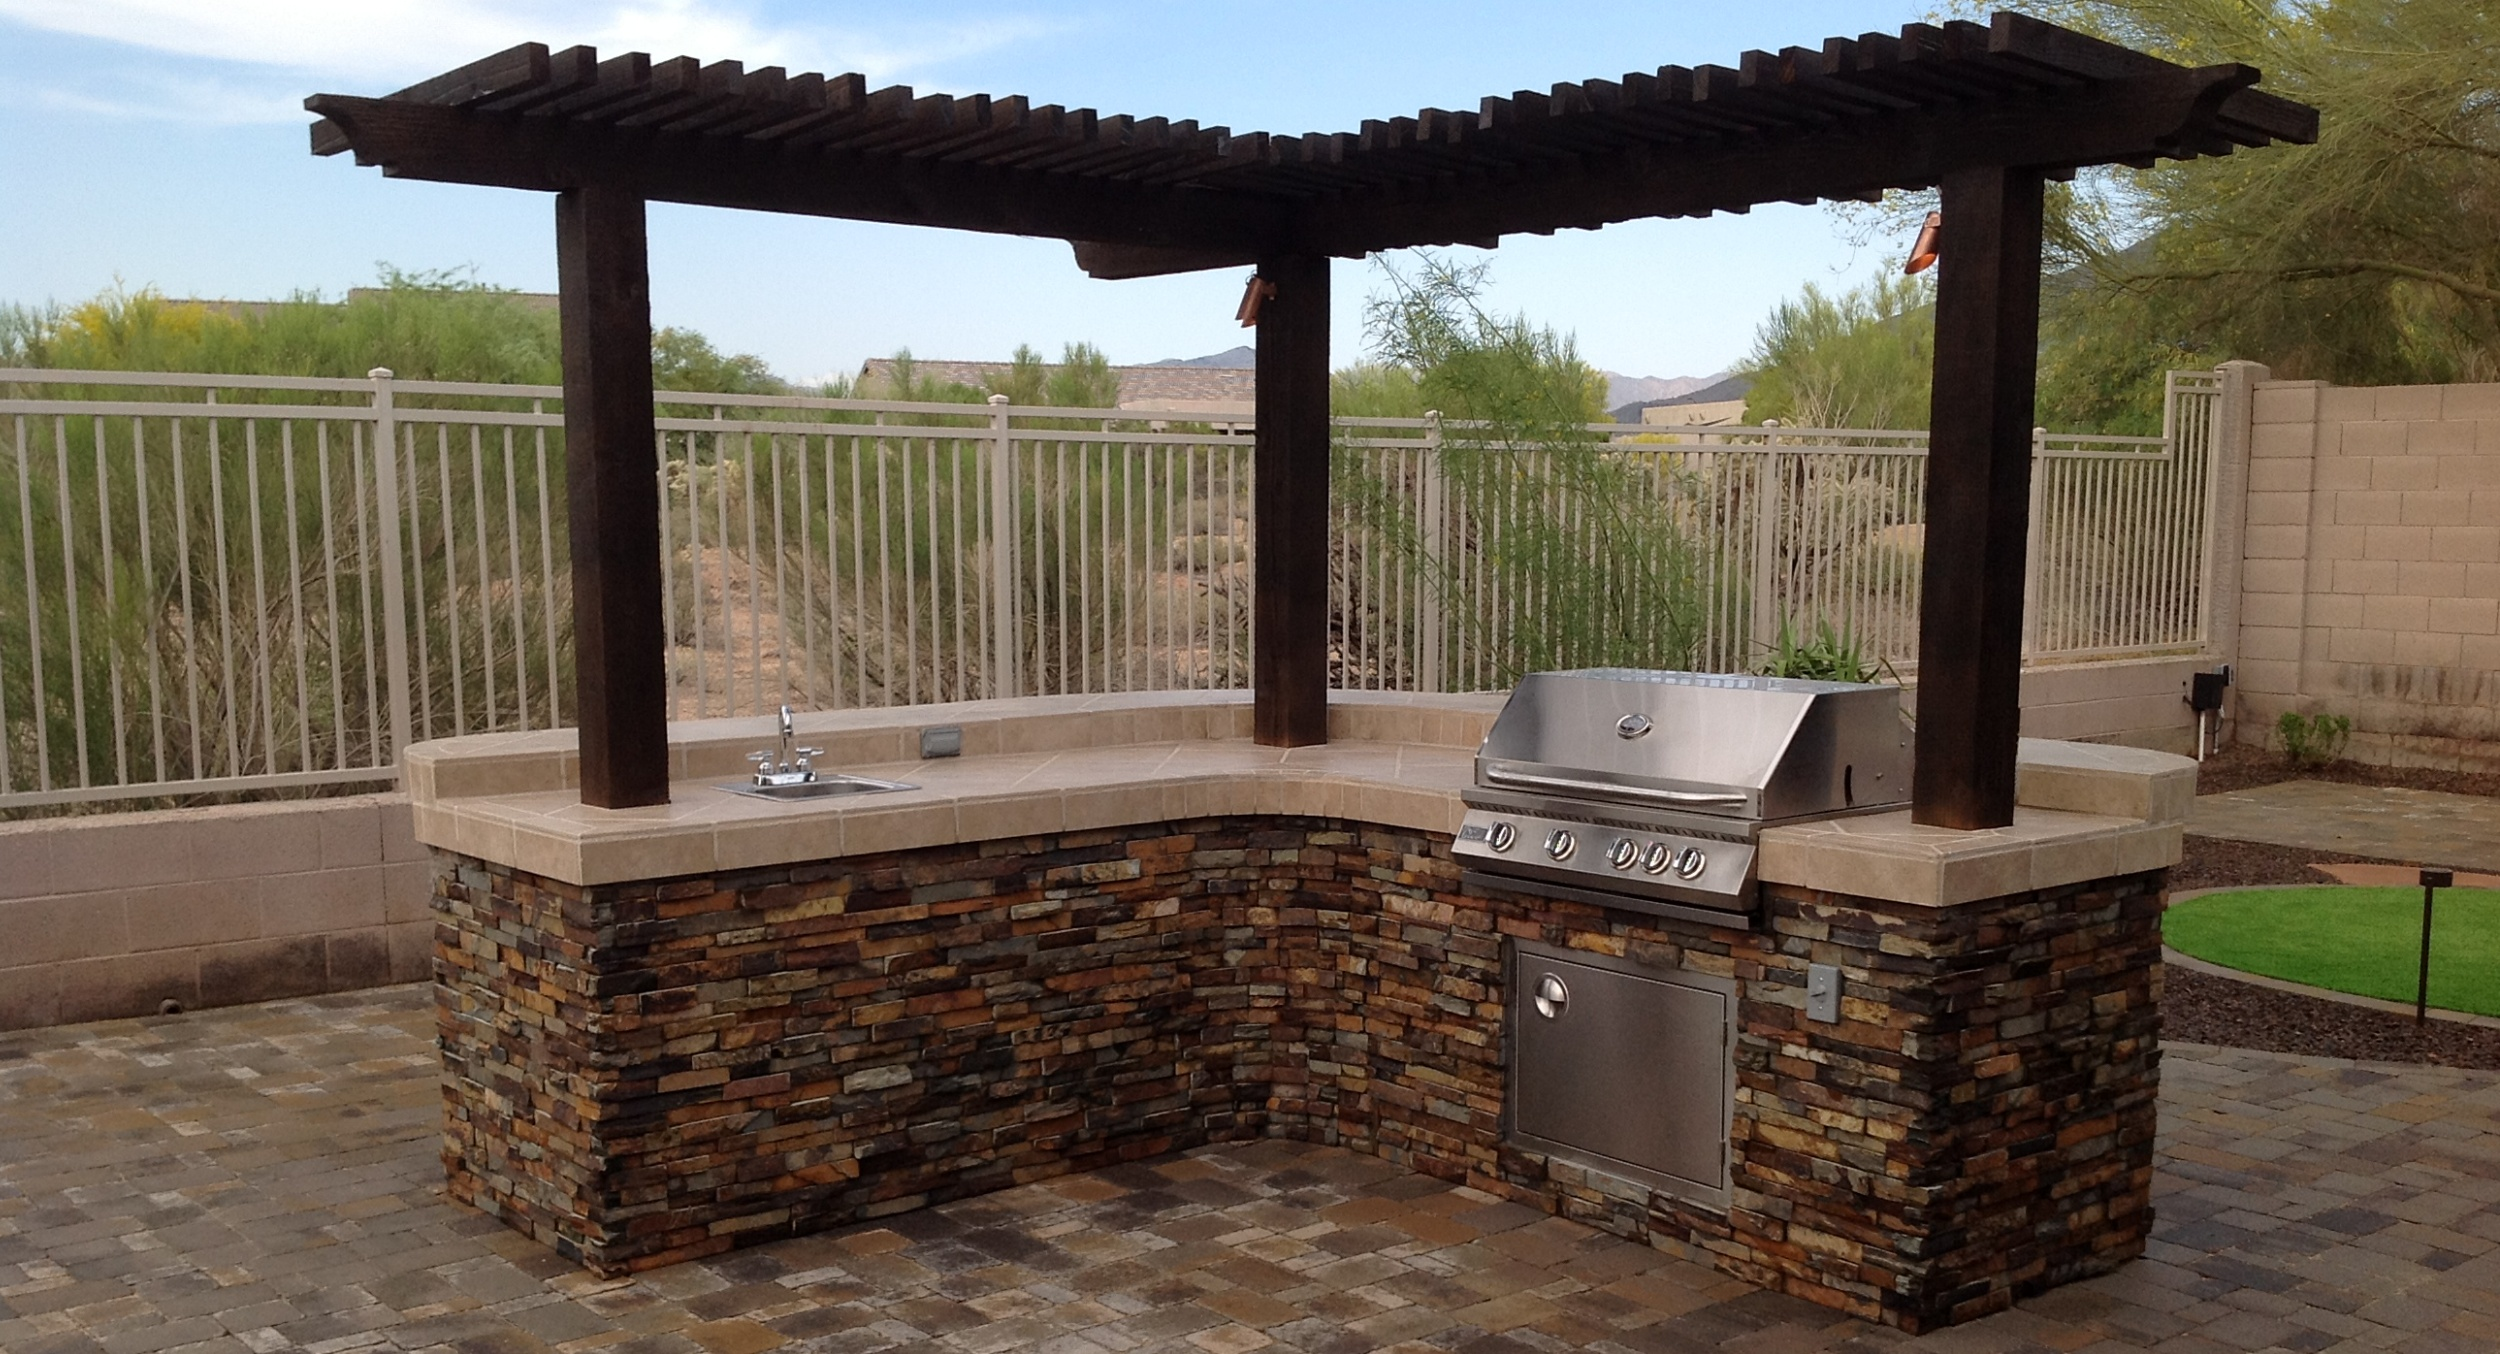 A gorgeous built-in grill Glendale, AZ clients had us build from natural stone with a coordinated tile counter topped with a mini ramada that creates shade and lights the space after dark.